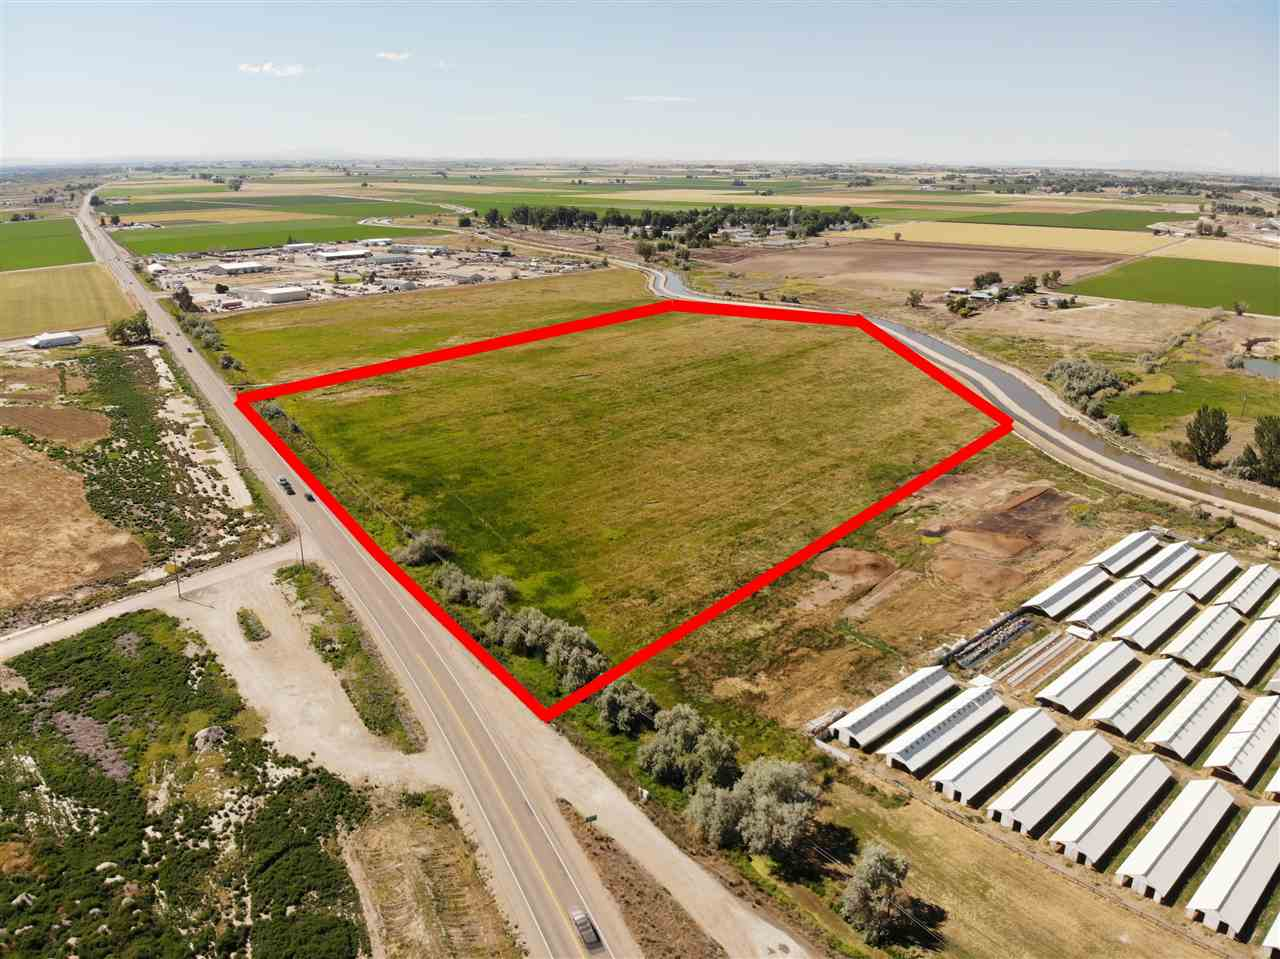 Fantastic opportunity for easy I-84 freeway access as well as Hwy 20-26 access. Located in the City Impact area with possible Commercial & Light Industrial rezone. Approx a total of 91.18+/- acres in this immediate area available to create larger or even smaller parcels for your needs. Currently zoned Ag w (62) 110' x 20' sheds and 1 home (sold as-is). City sewer and water in the immediate area. Call for details!